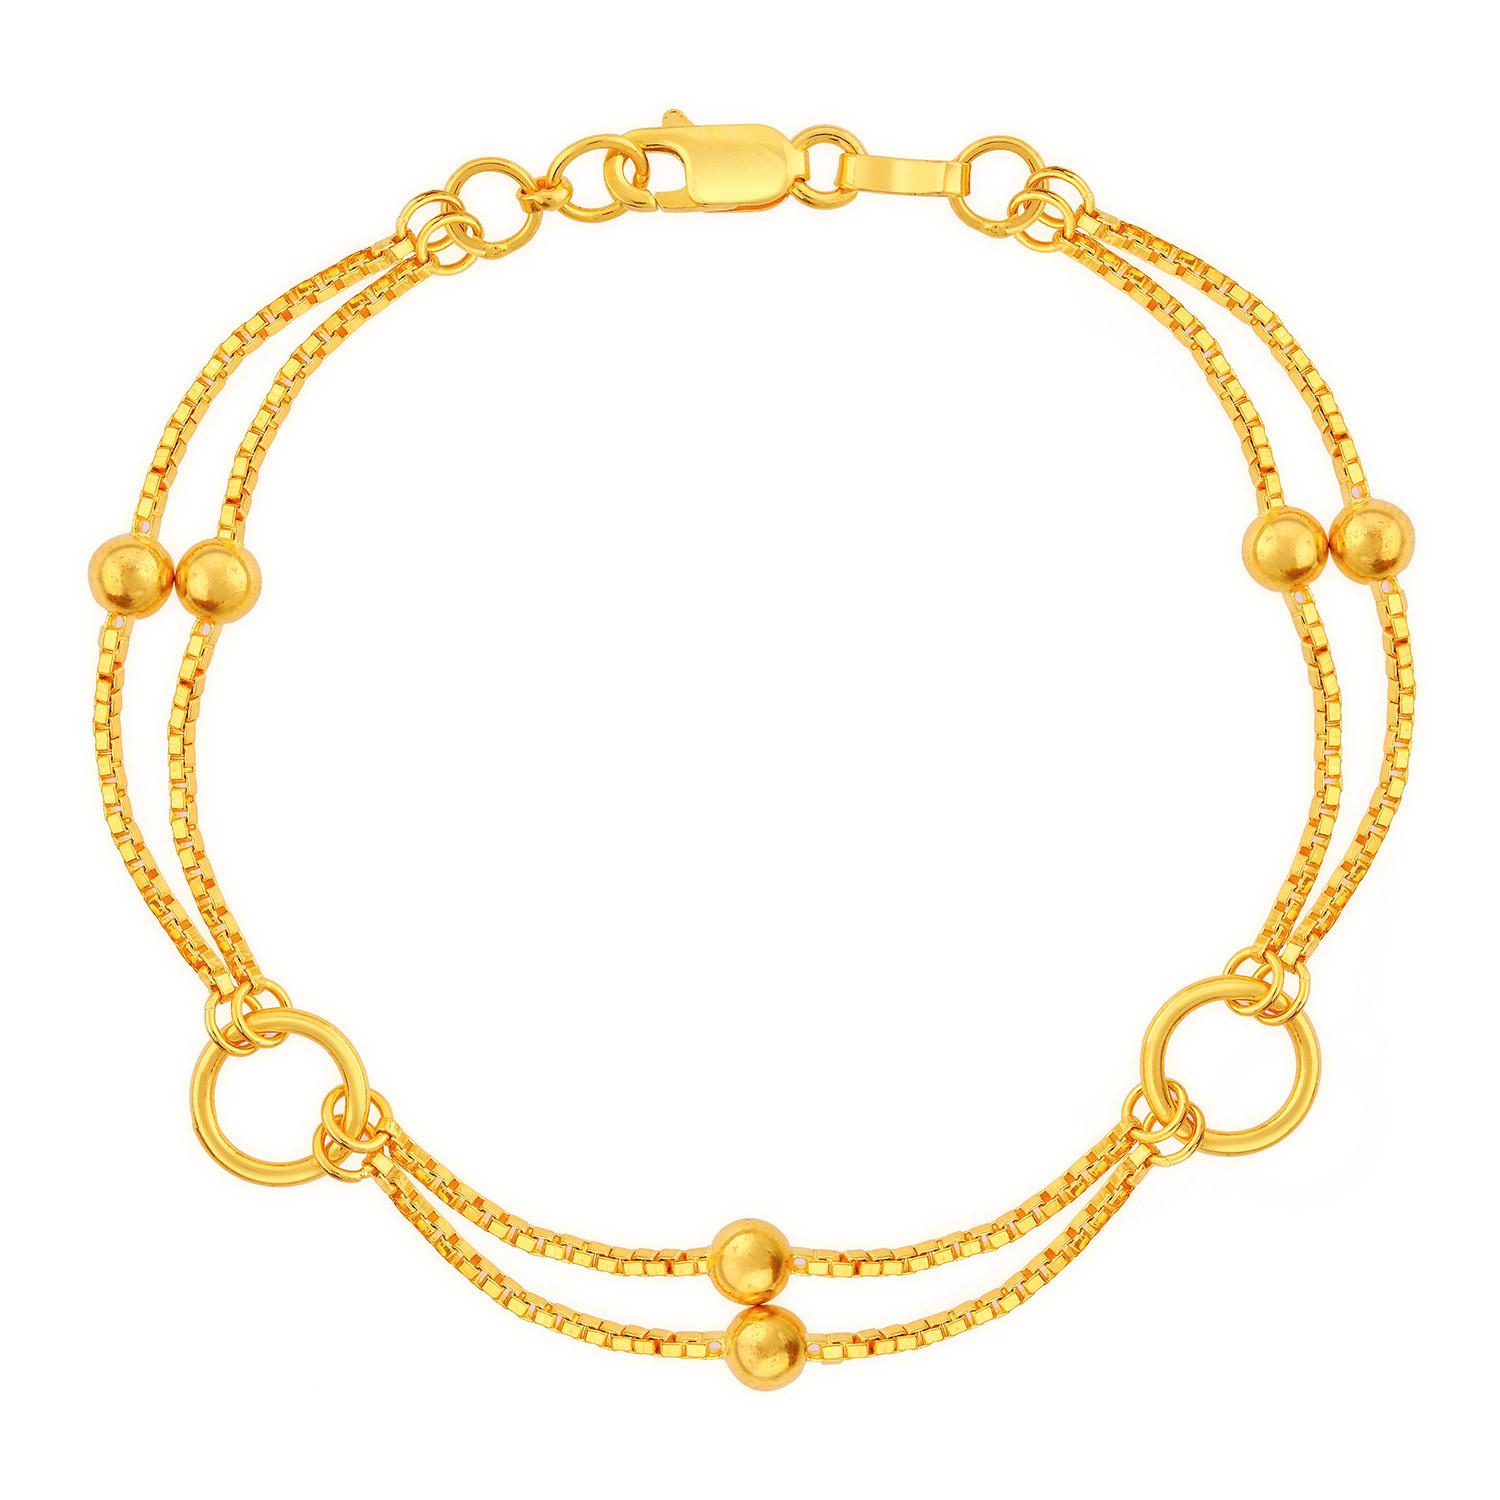 buy malabar gold bracelet brbfmcha004 for women online